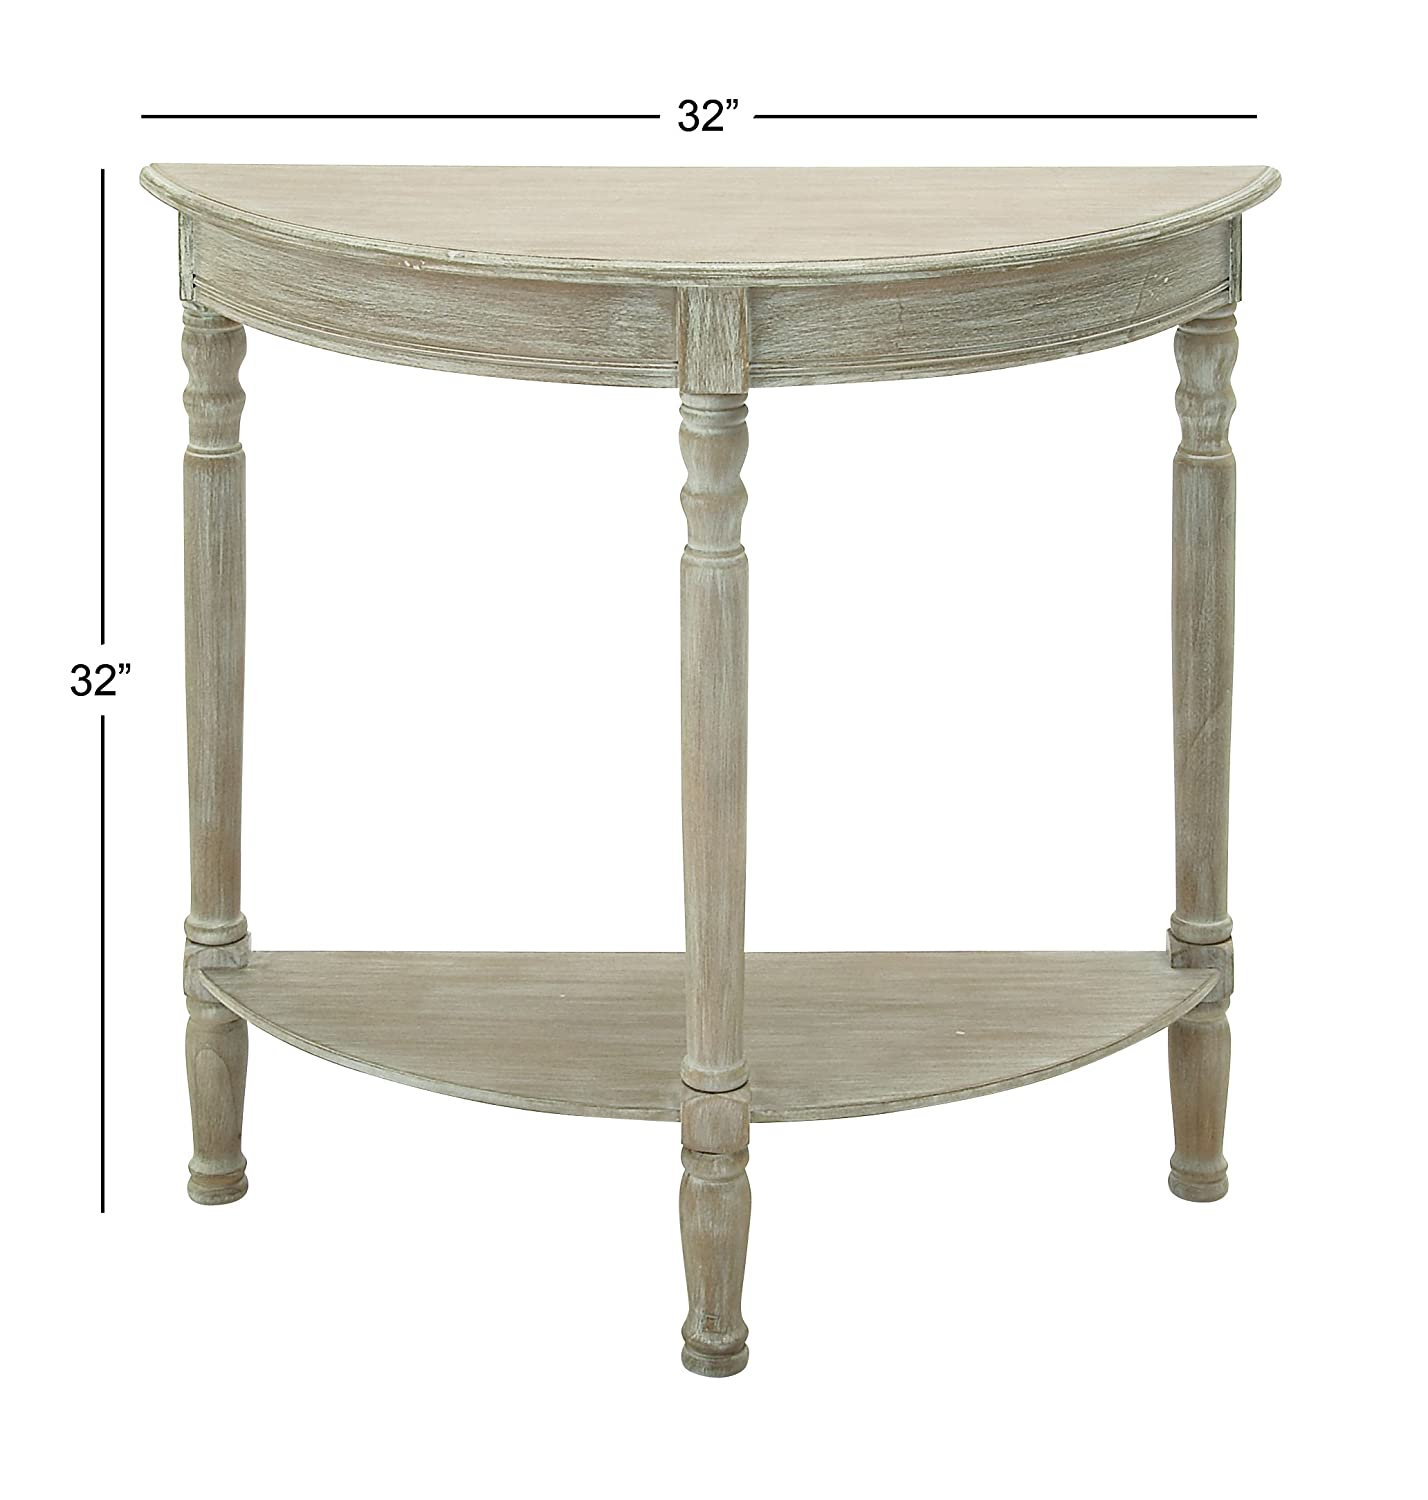 Outstanding Deco 79 96329 Wood 1 2 Round Console Table 32 X 32 Taupe Gmtry Best Dining Table And Chair Ideas Images Gmtryco